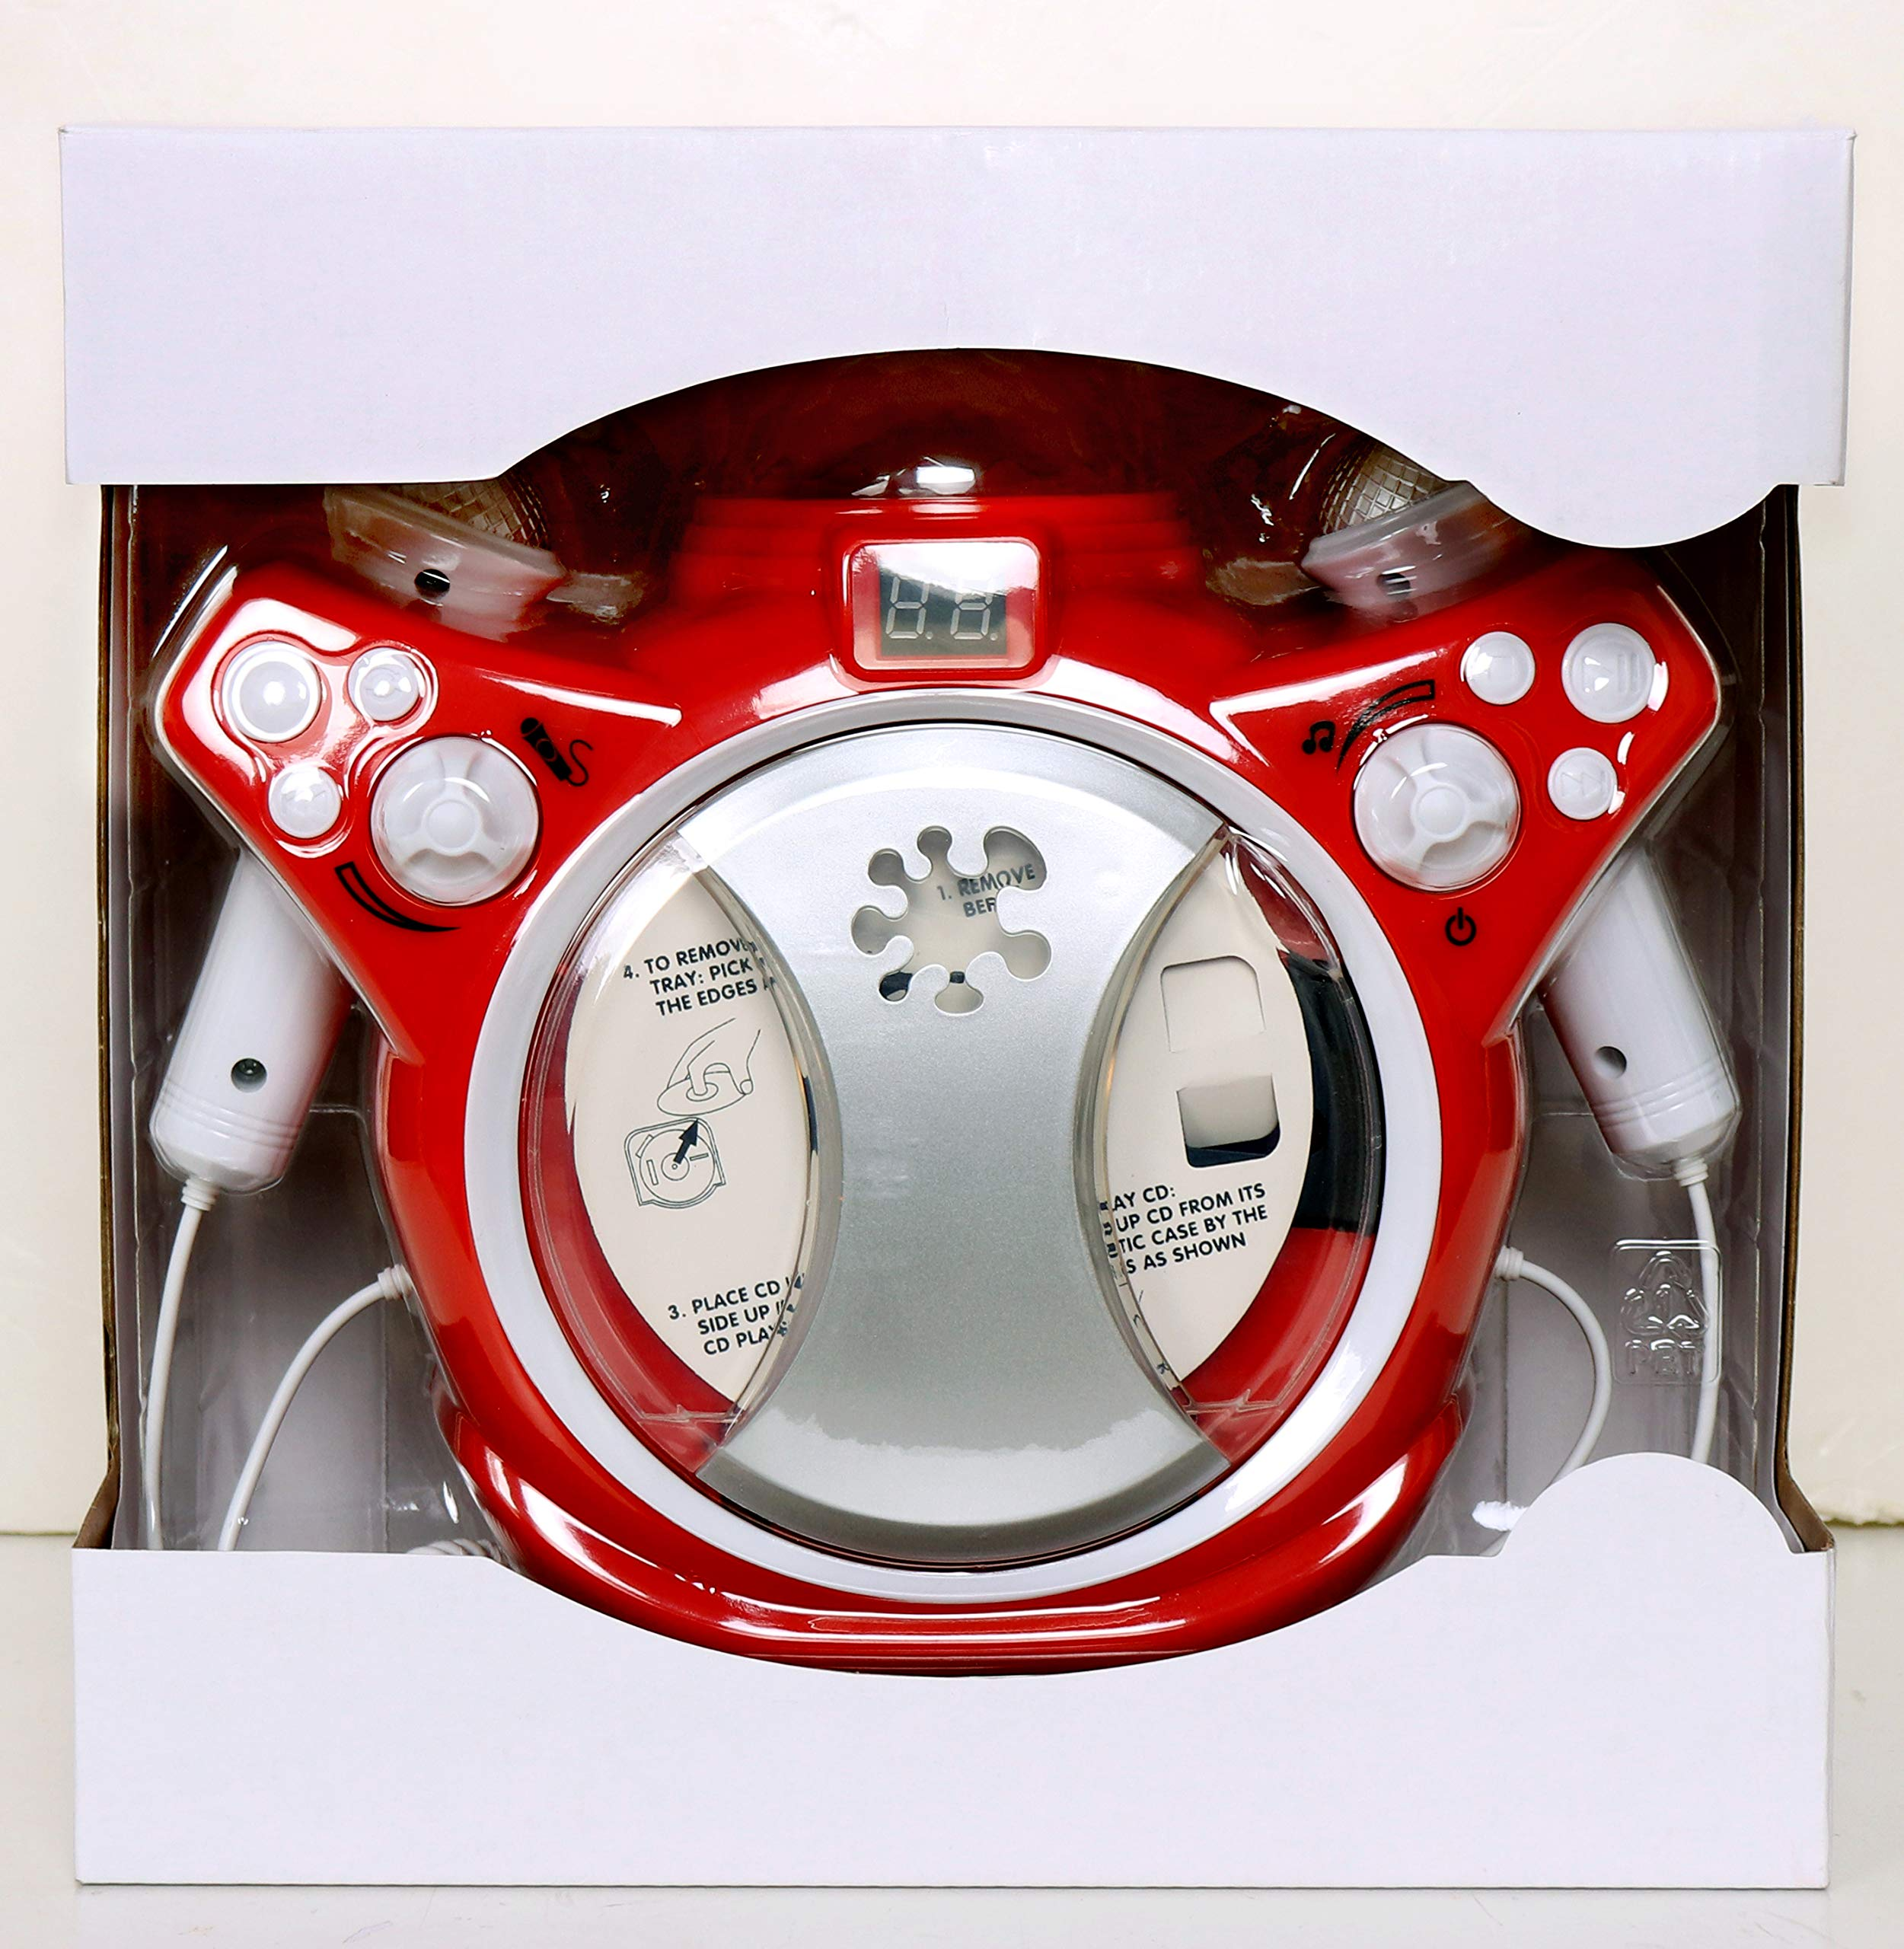 C.Z Kids Karaoke CD Player Listen or Sing Along to Your Favourite Songs by C.Z (Image #5)